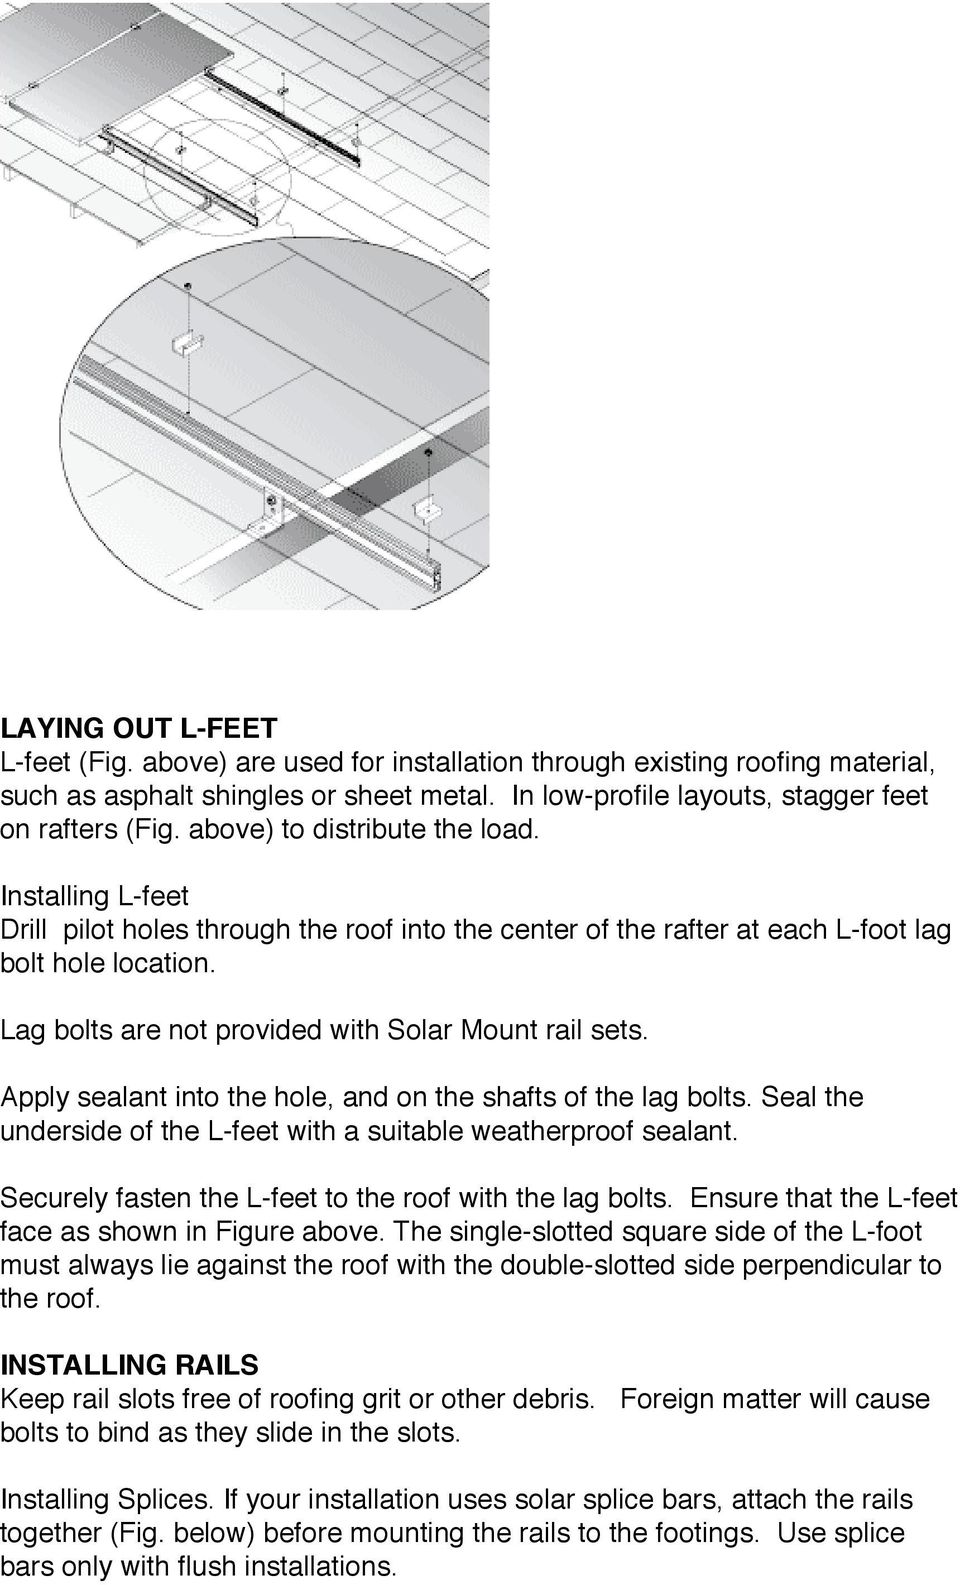 Lag bolts are not provided with Solar Mount rail sets. Apply sealant into the hole, and on the shafts of the lag bolts. Seal the underside of the L-feet with a suitable weatherproof sealant.